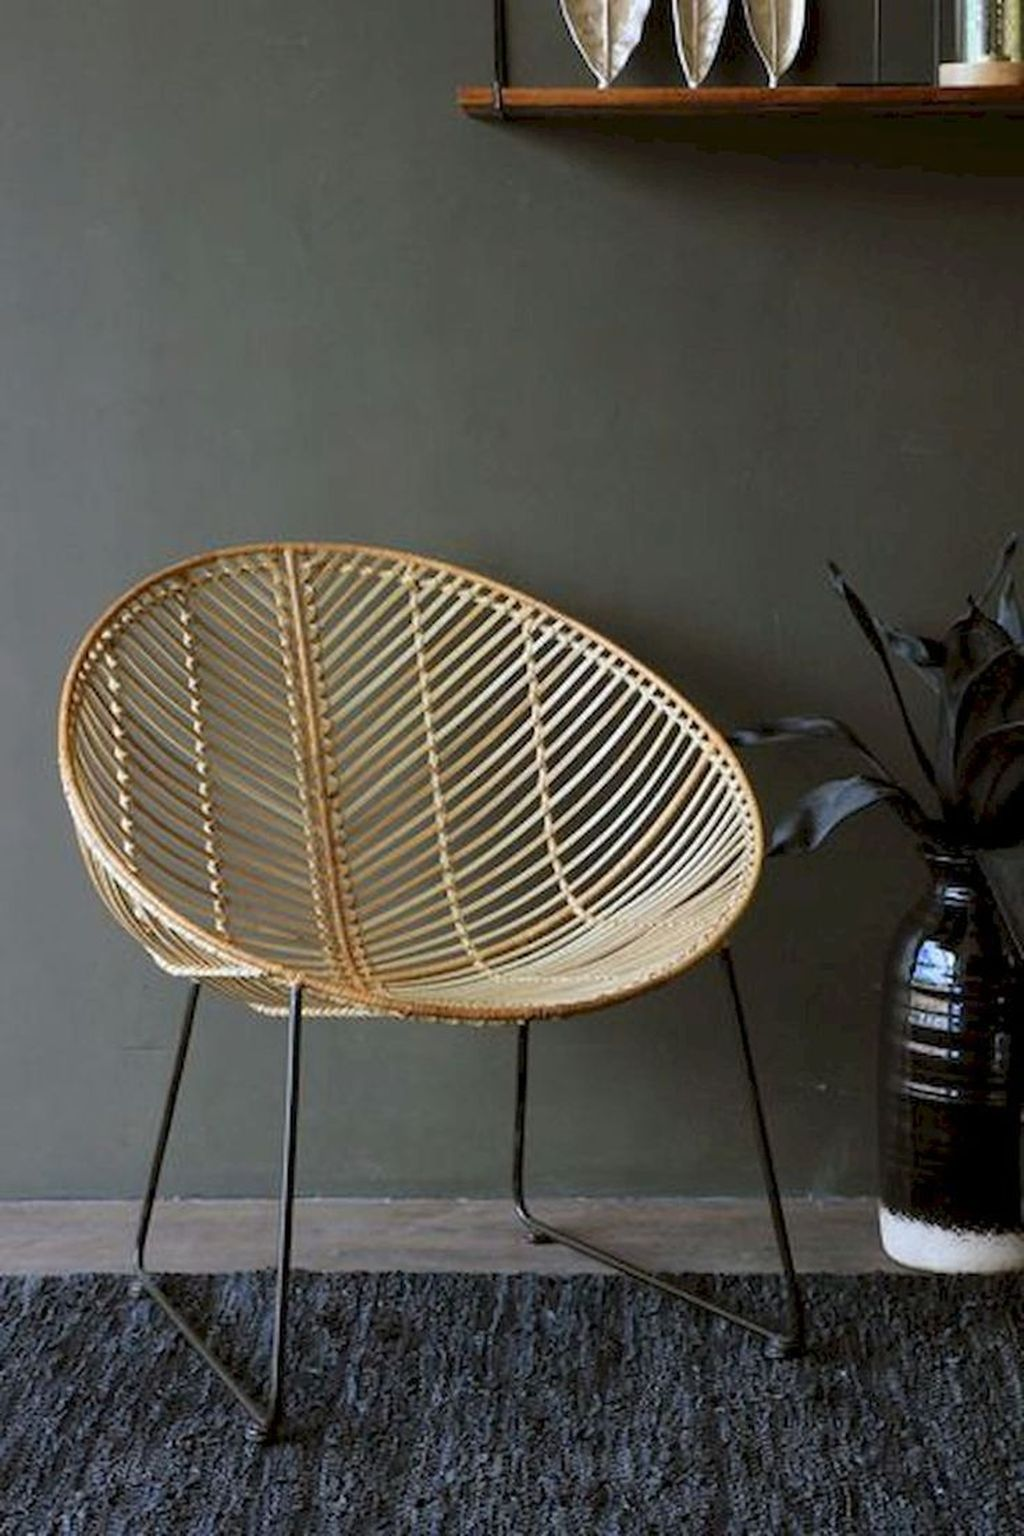 Stunning Rattan Furniture Design Ideas 33